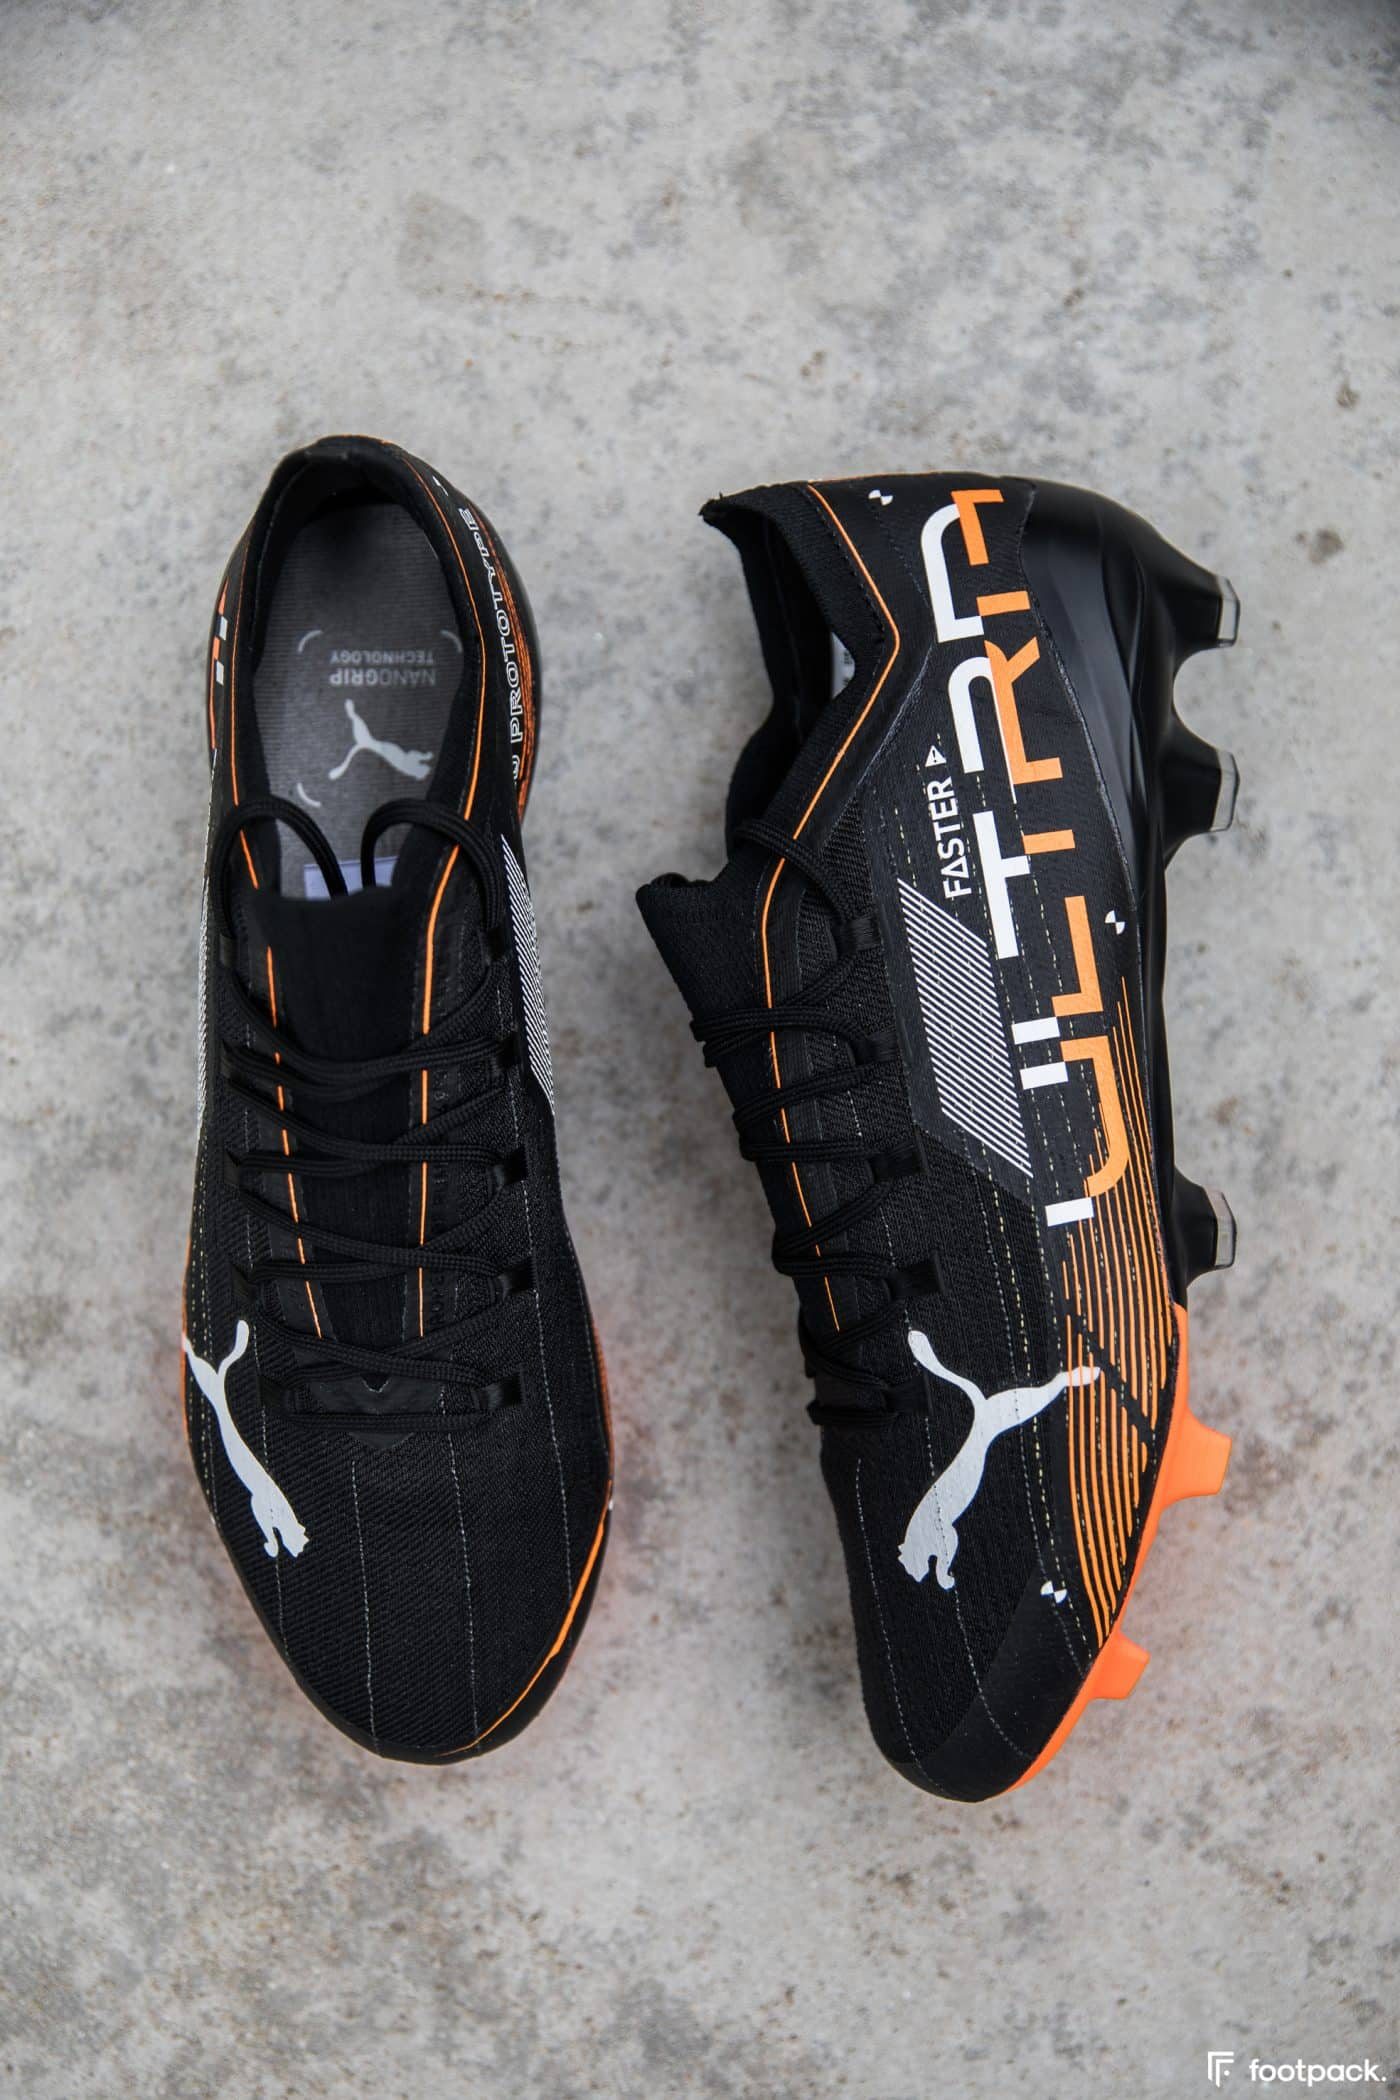 puma-chaussures-prototype-speed-boot-juillet-2020-footpack-6